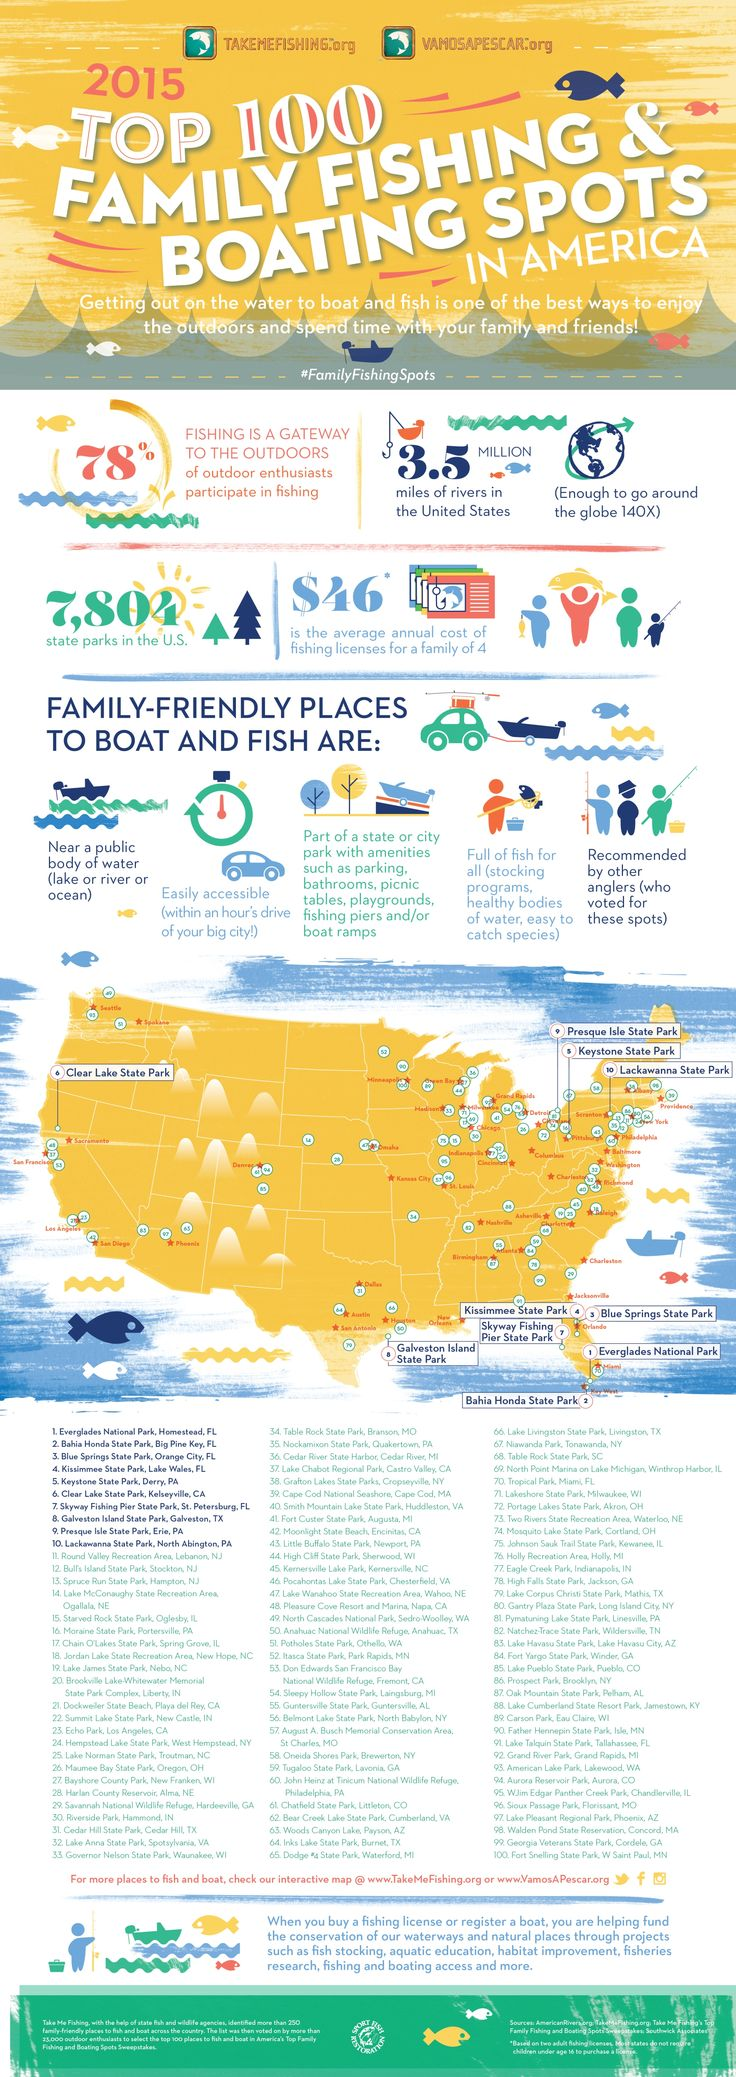 2015 Top 100 FamilyFriendly Places to Fish and Boat